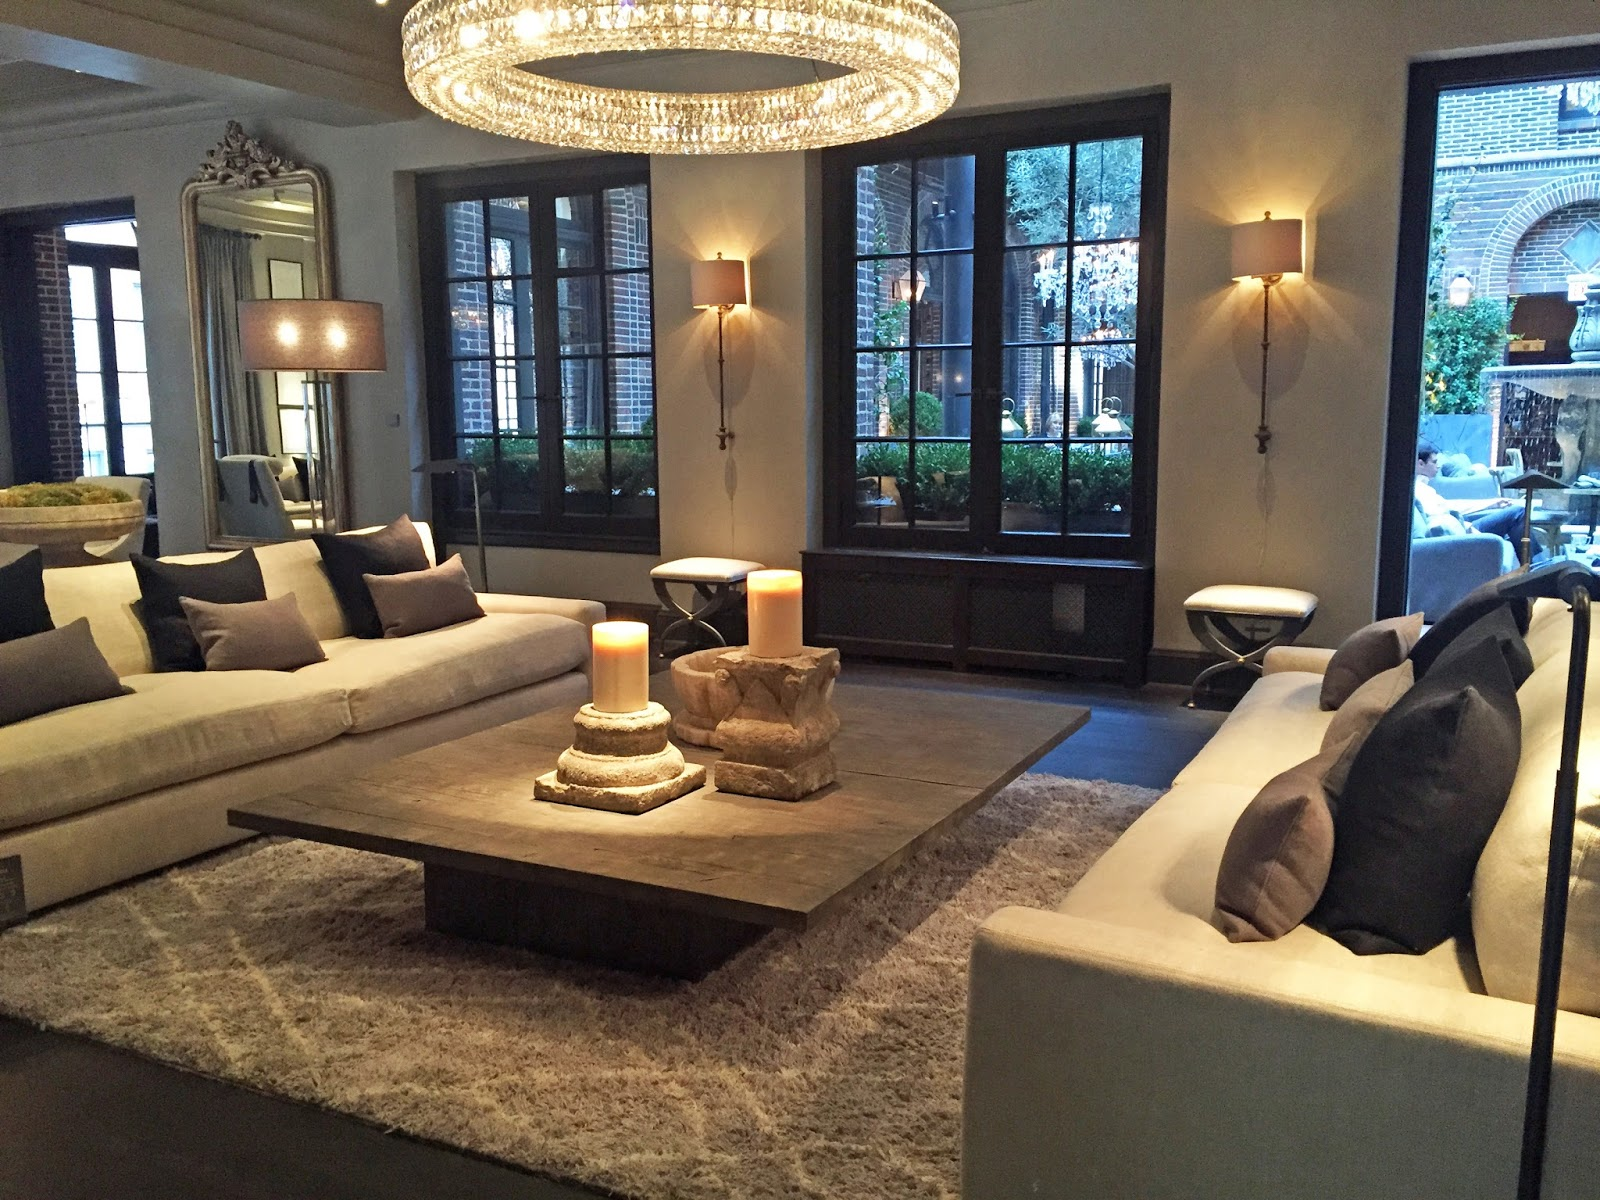 The Fabulous Restoration Hardware Store In Chicago